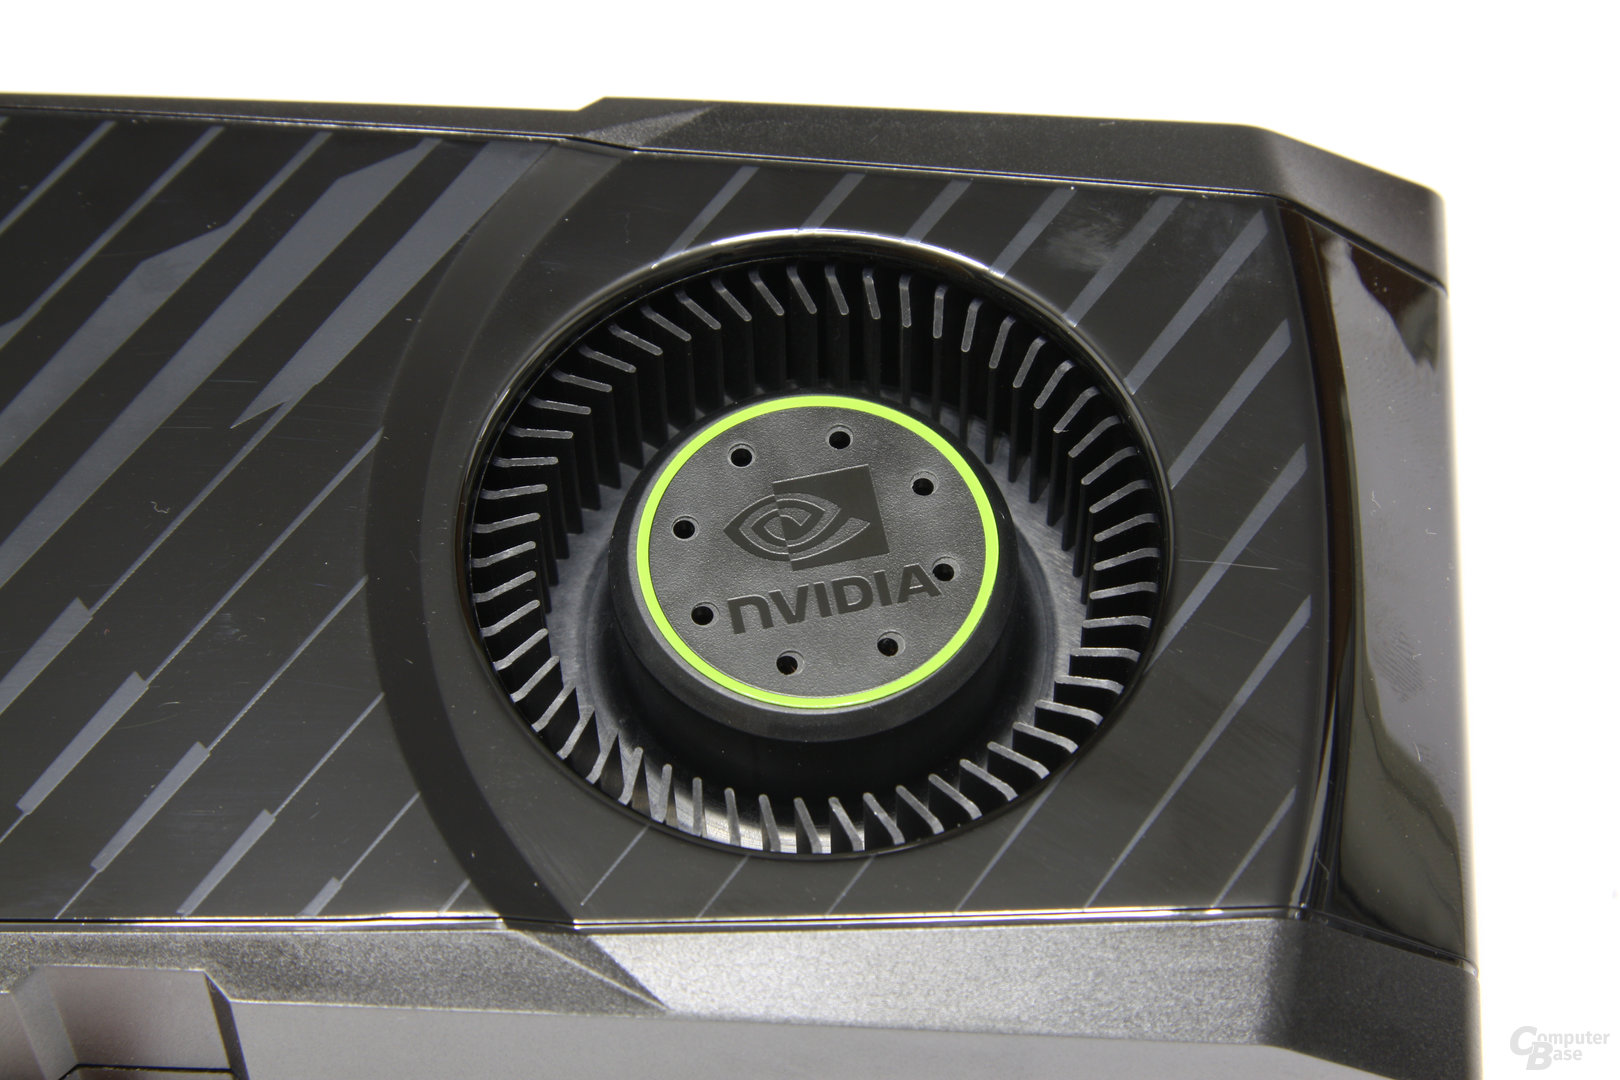 GeForce GTX 580 Lüfter